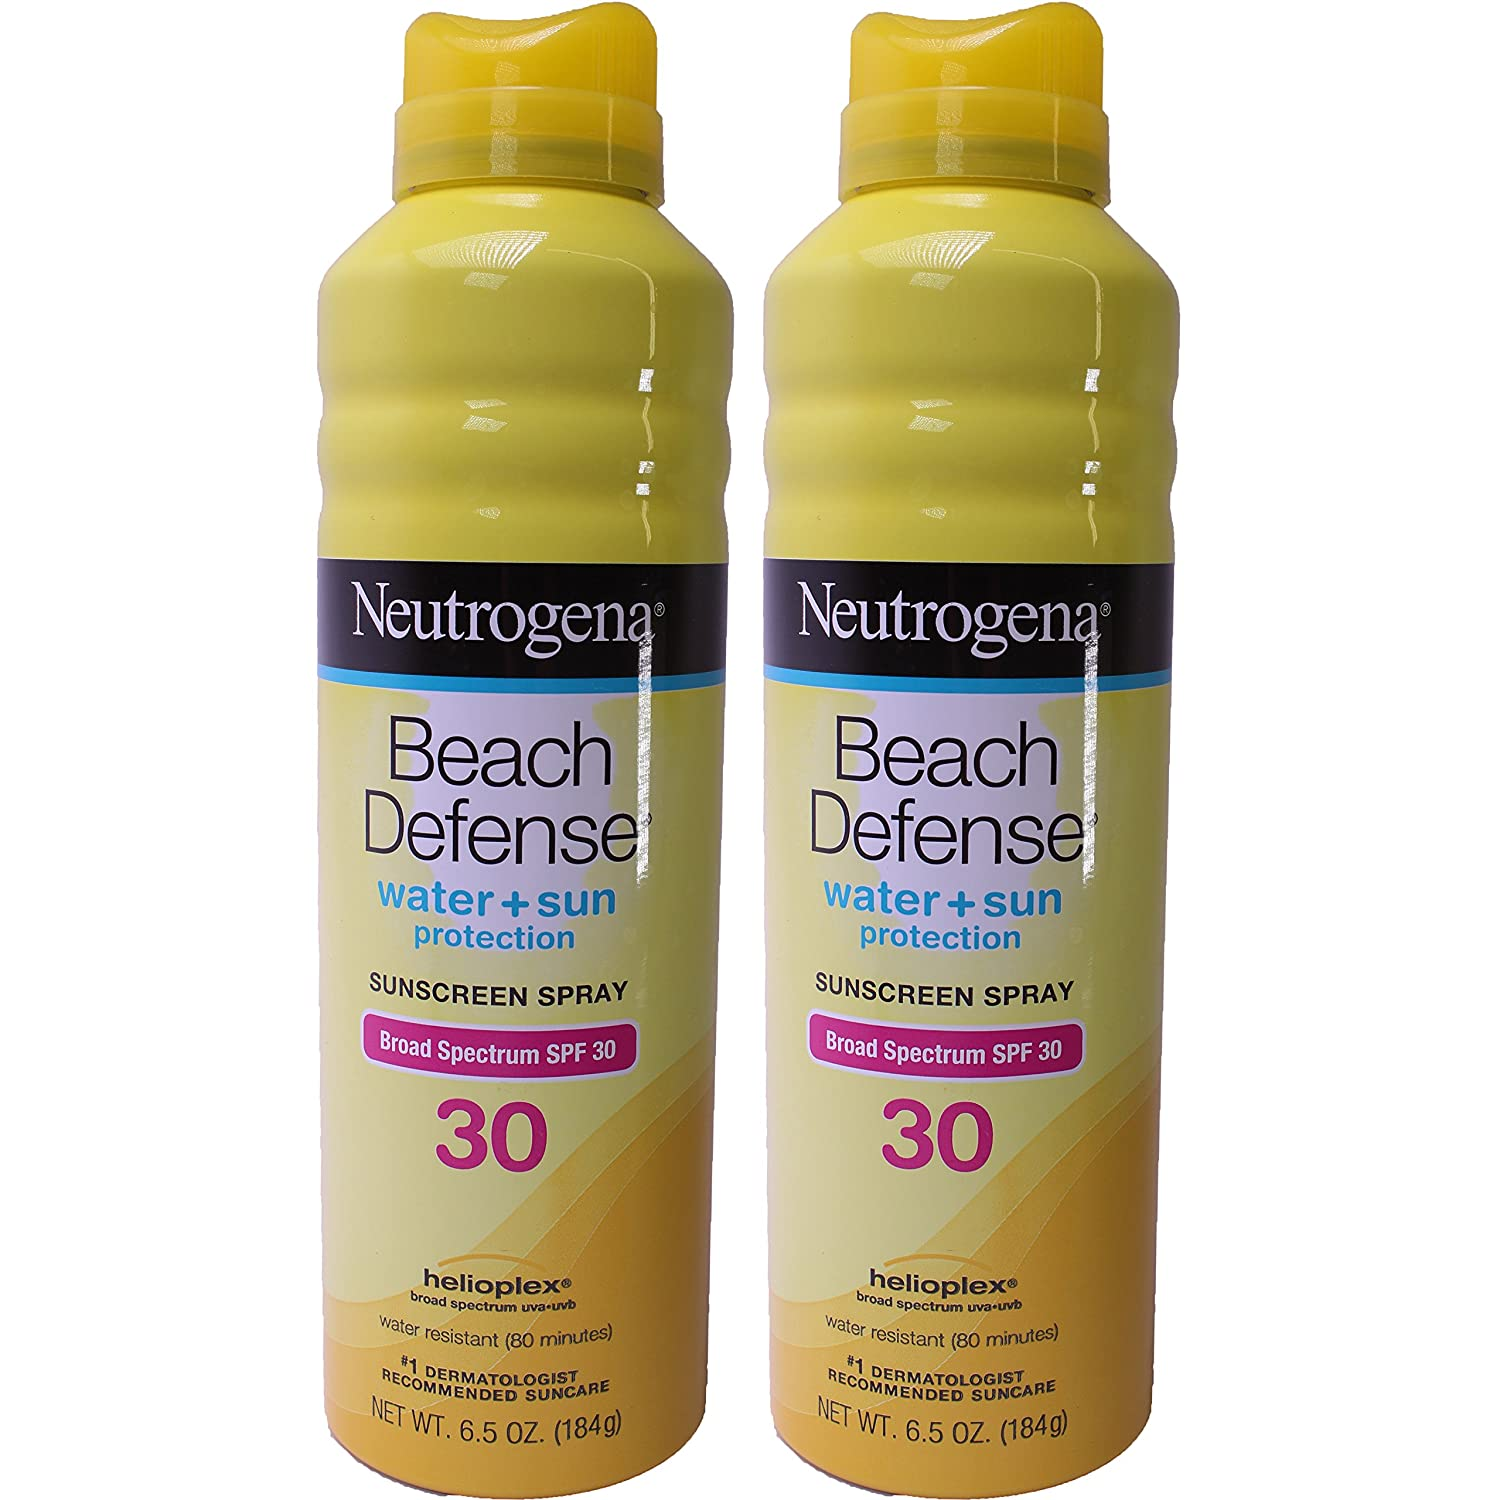 Neutrogena Beach Defense Spf#30 Spray 6.5 Ounce (192ml) (2 Pack)